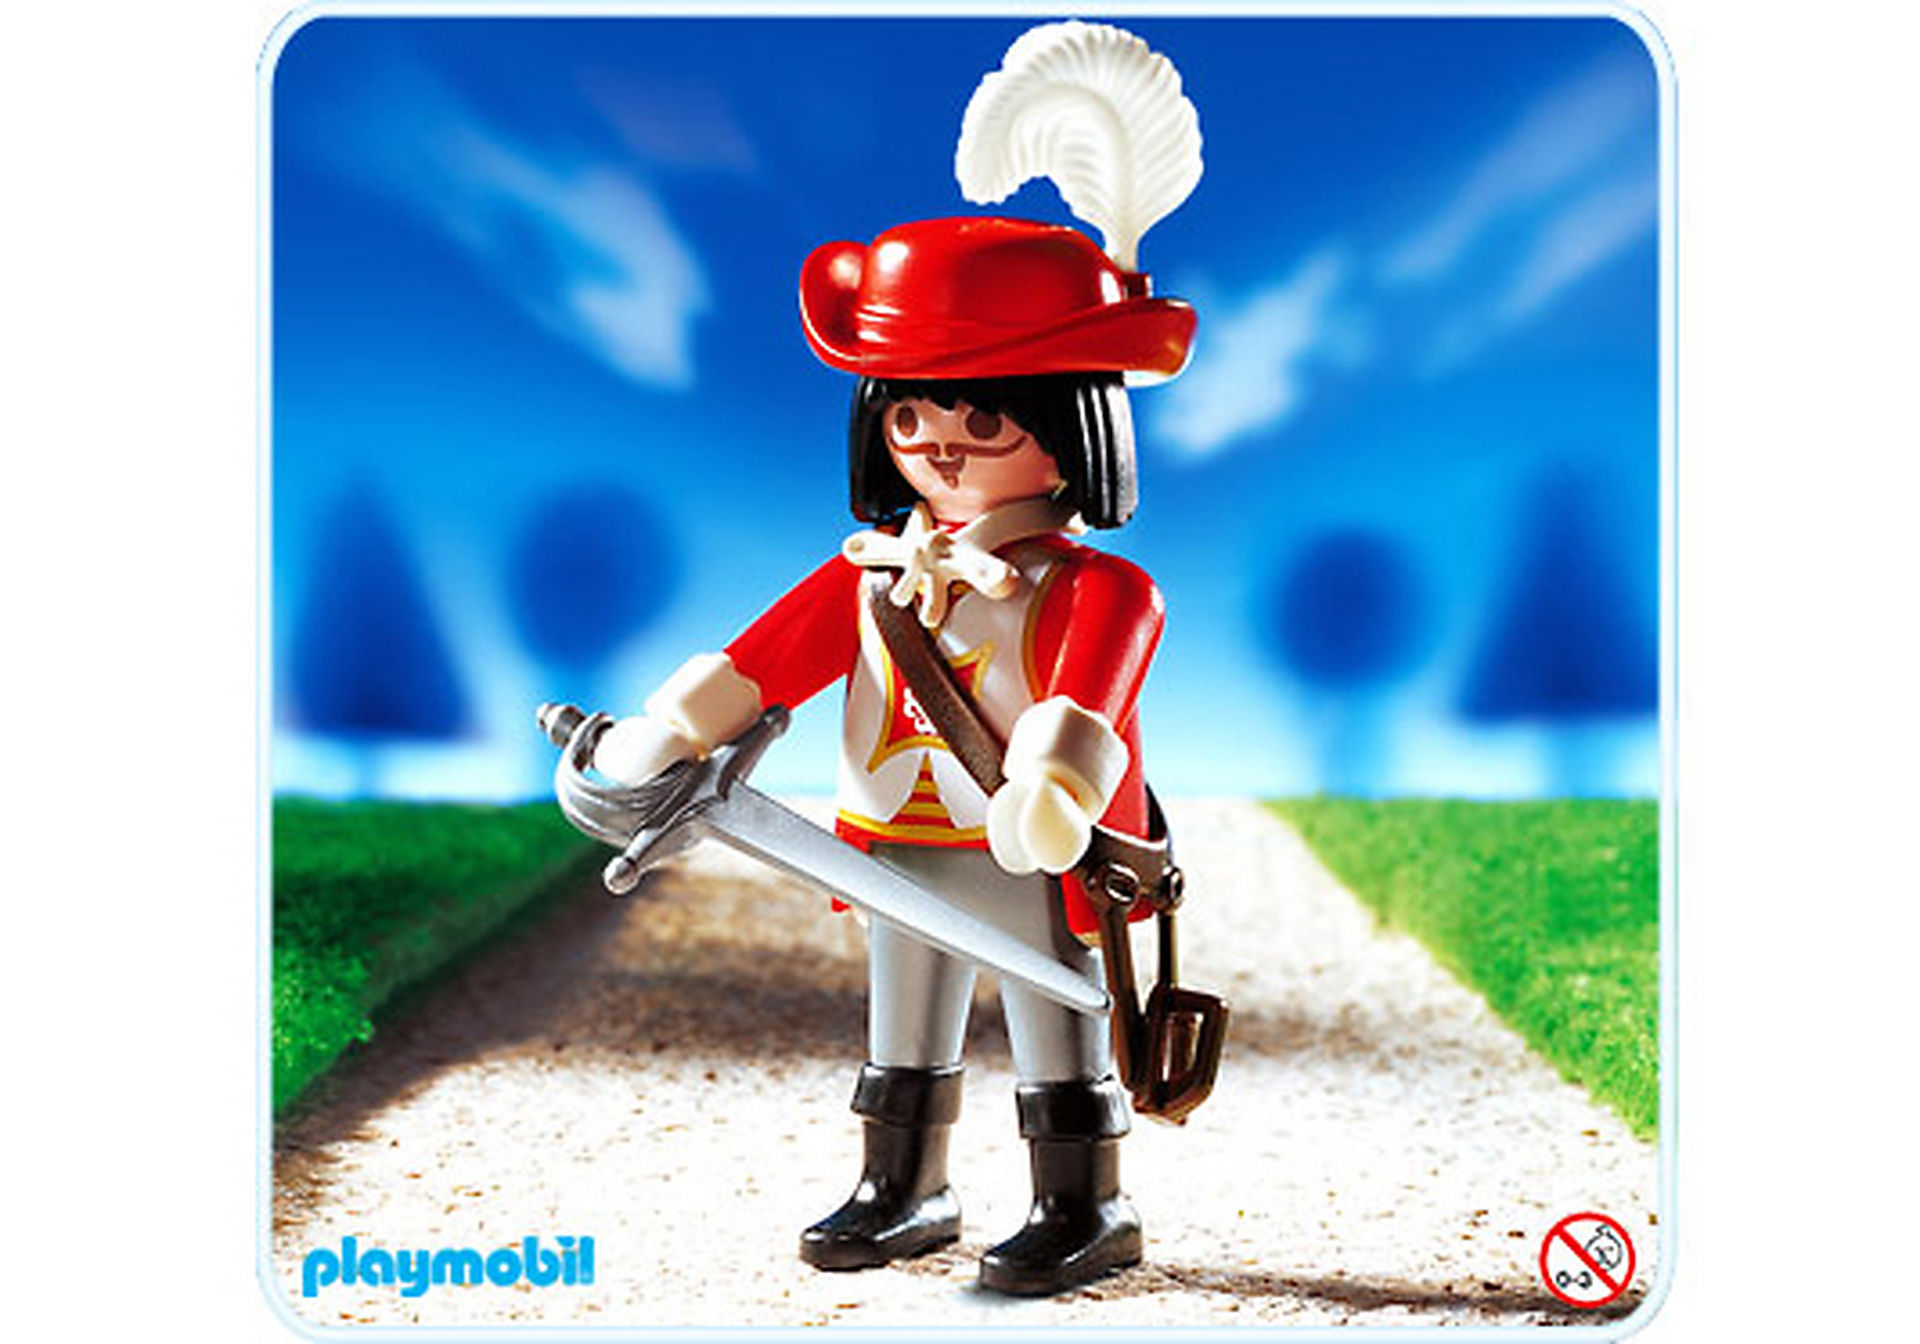 http://media.playmobil.com/i/playmobil/4627-A_product_detail/Roter Musketier